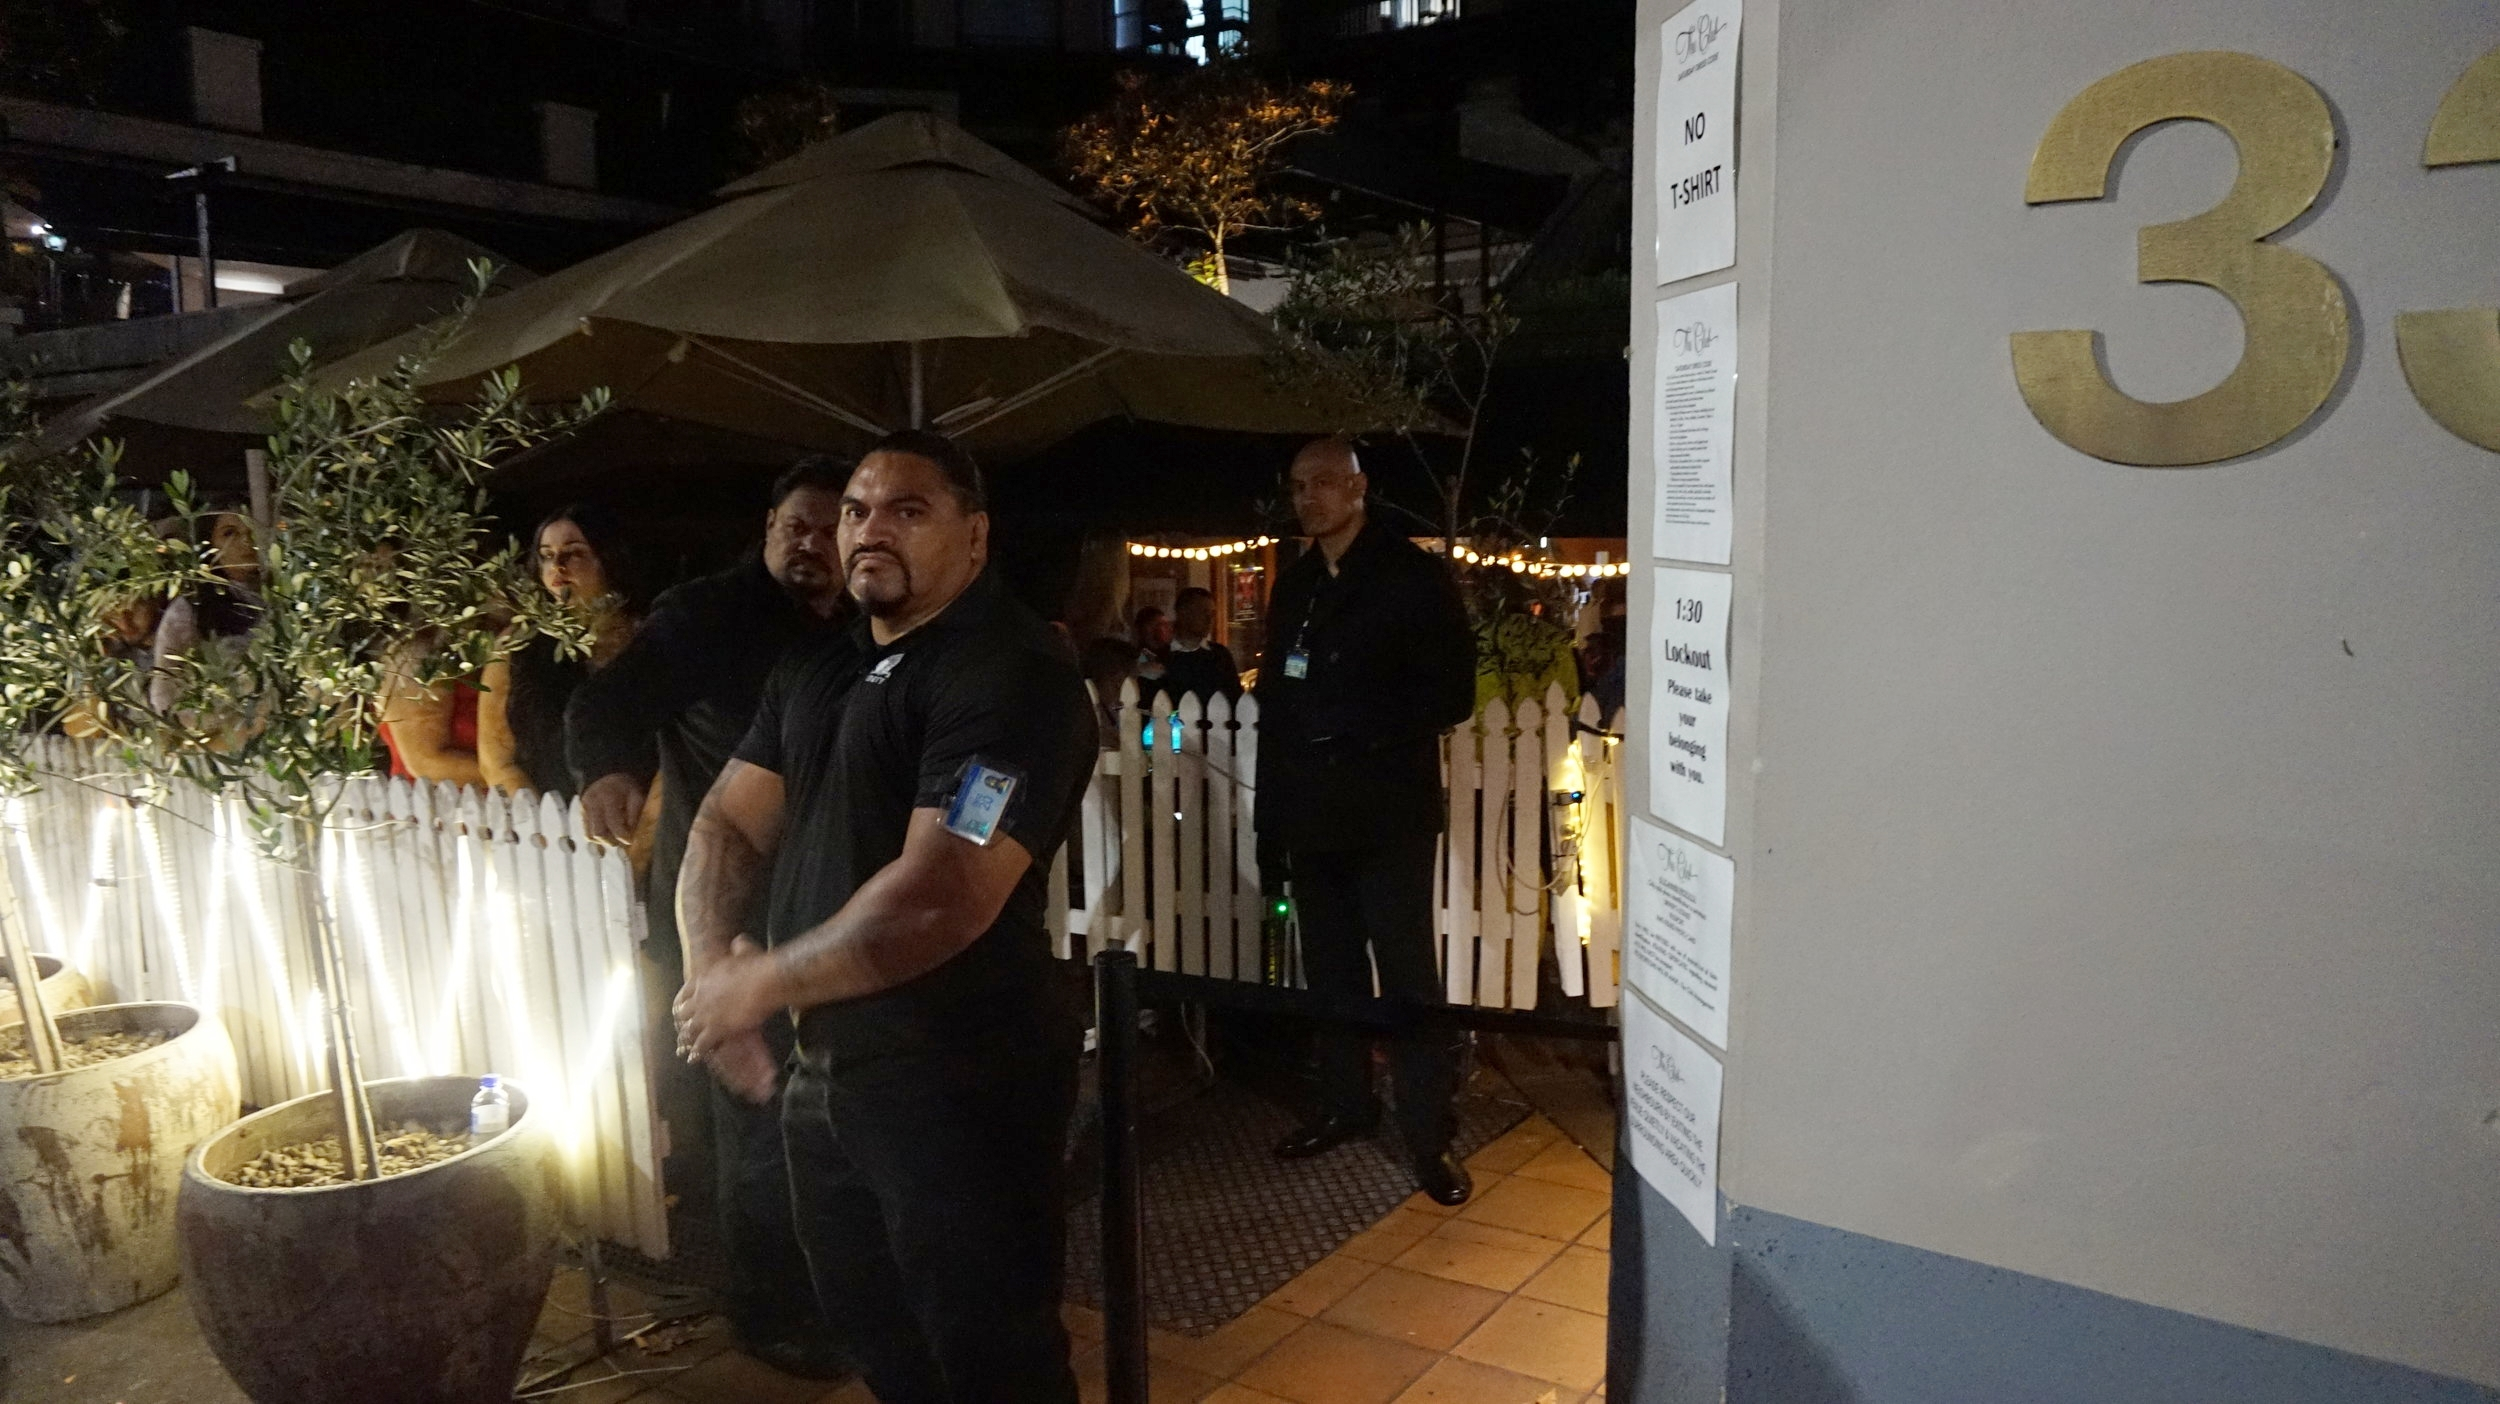 Security work, nightclubs, security guards